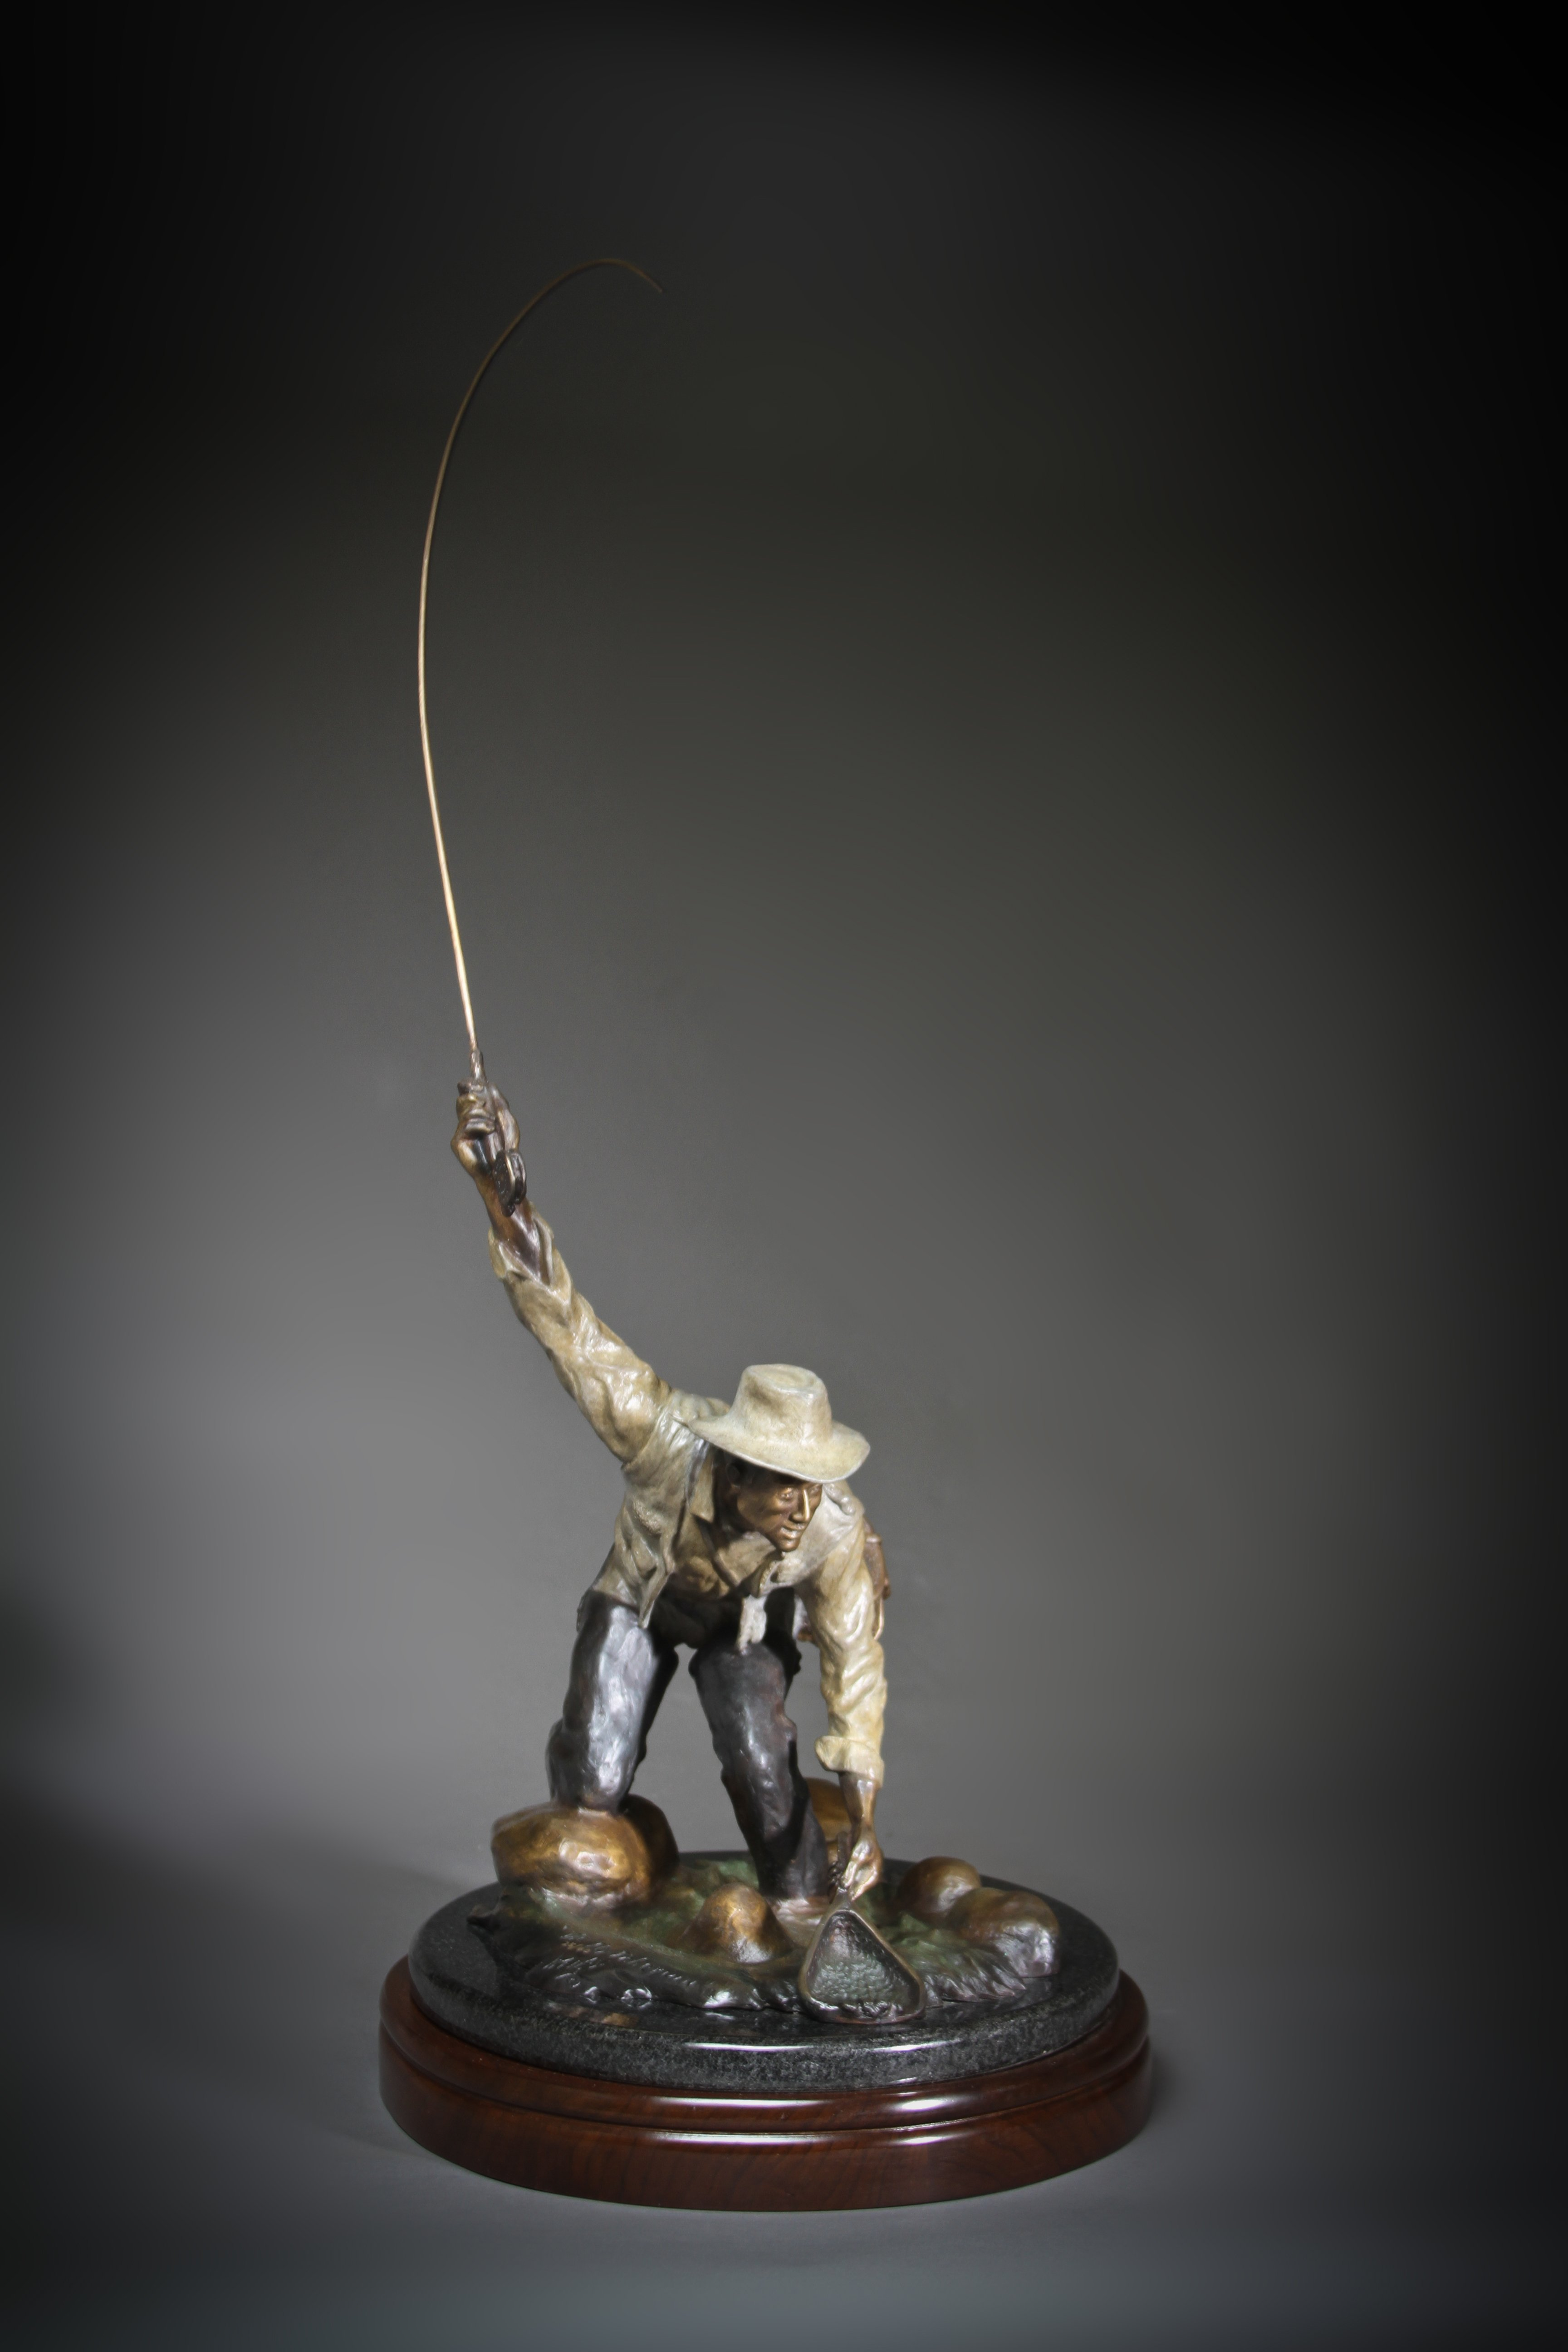 """The Fly Fisherman"" Height:29"" Base:12x14 inches"